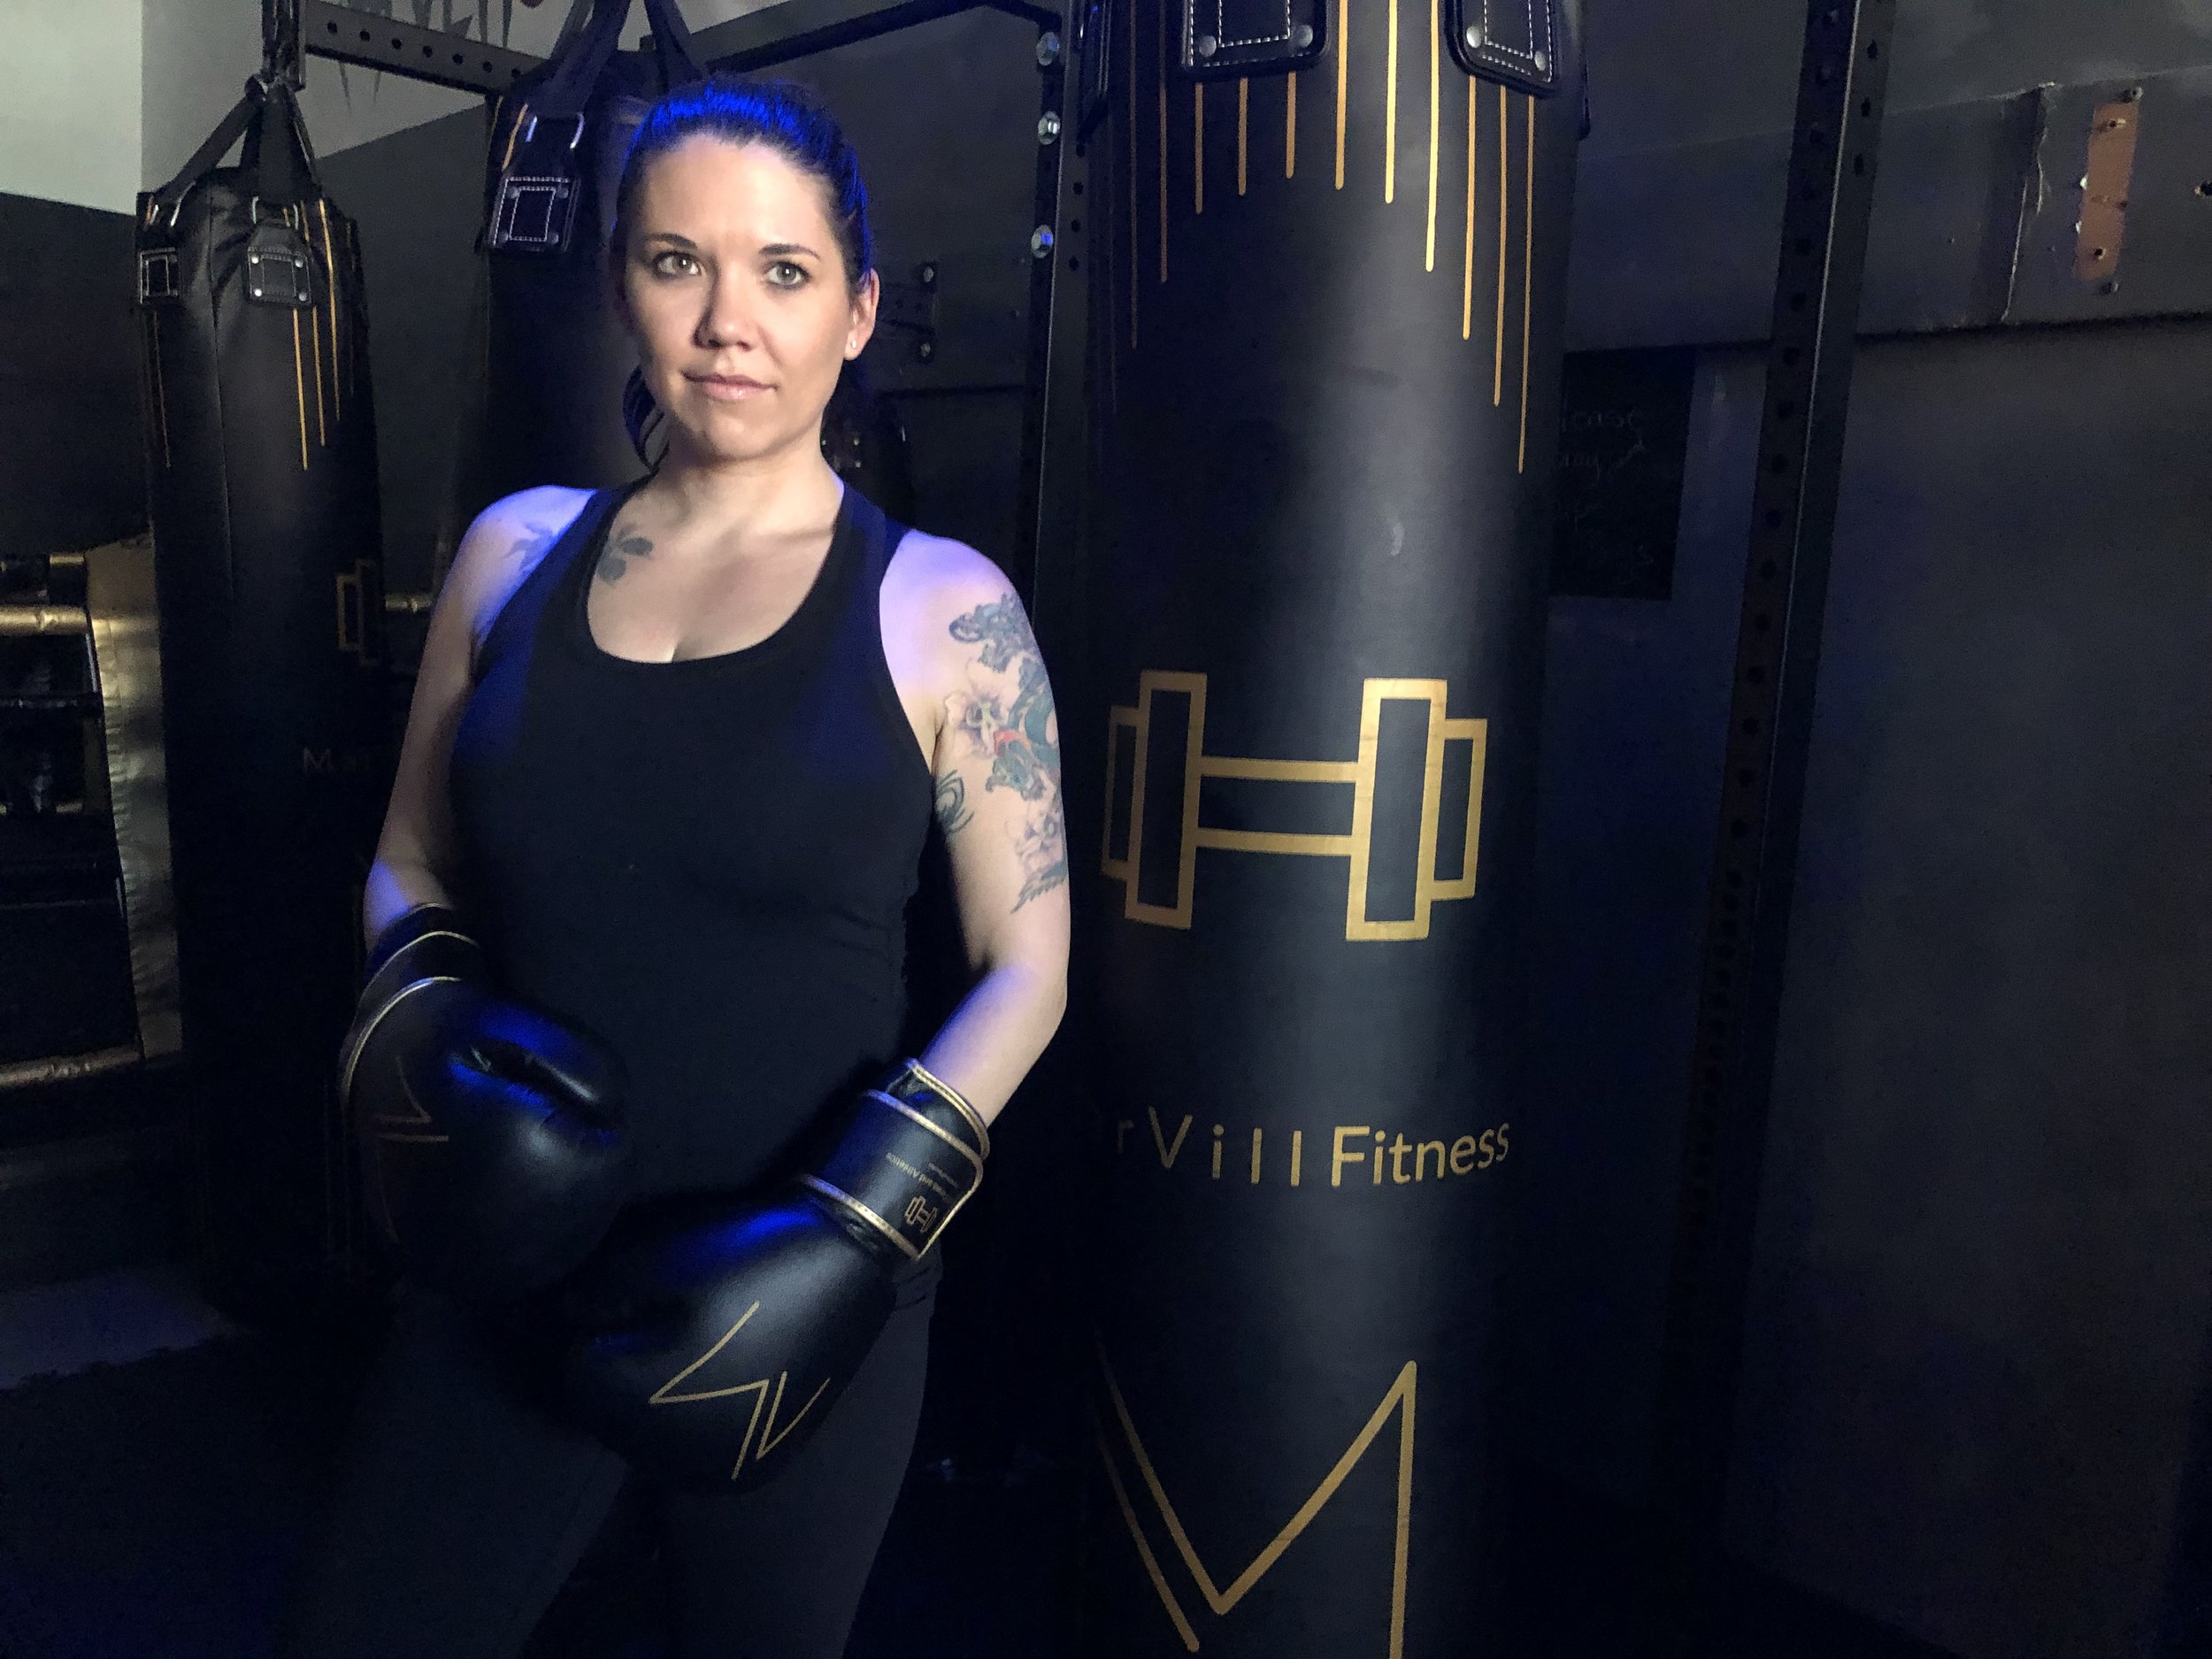 """- Jessica lemmon - Lemmon Entertainment - """"I've always genuinely enjoyed exercise but when my responsibilities increased & international touring became a heavy, I struggled to stay active & my physical and mental health suffered. I now make exercise my top priority. I schedule my life around my pre-planned work outs & my body + brain feel stronger than ever!"""""""